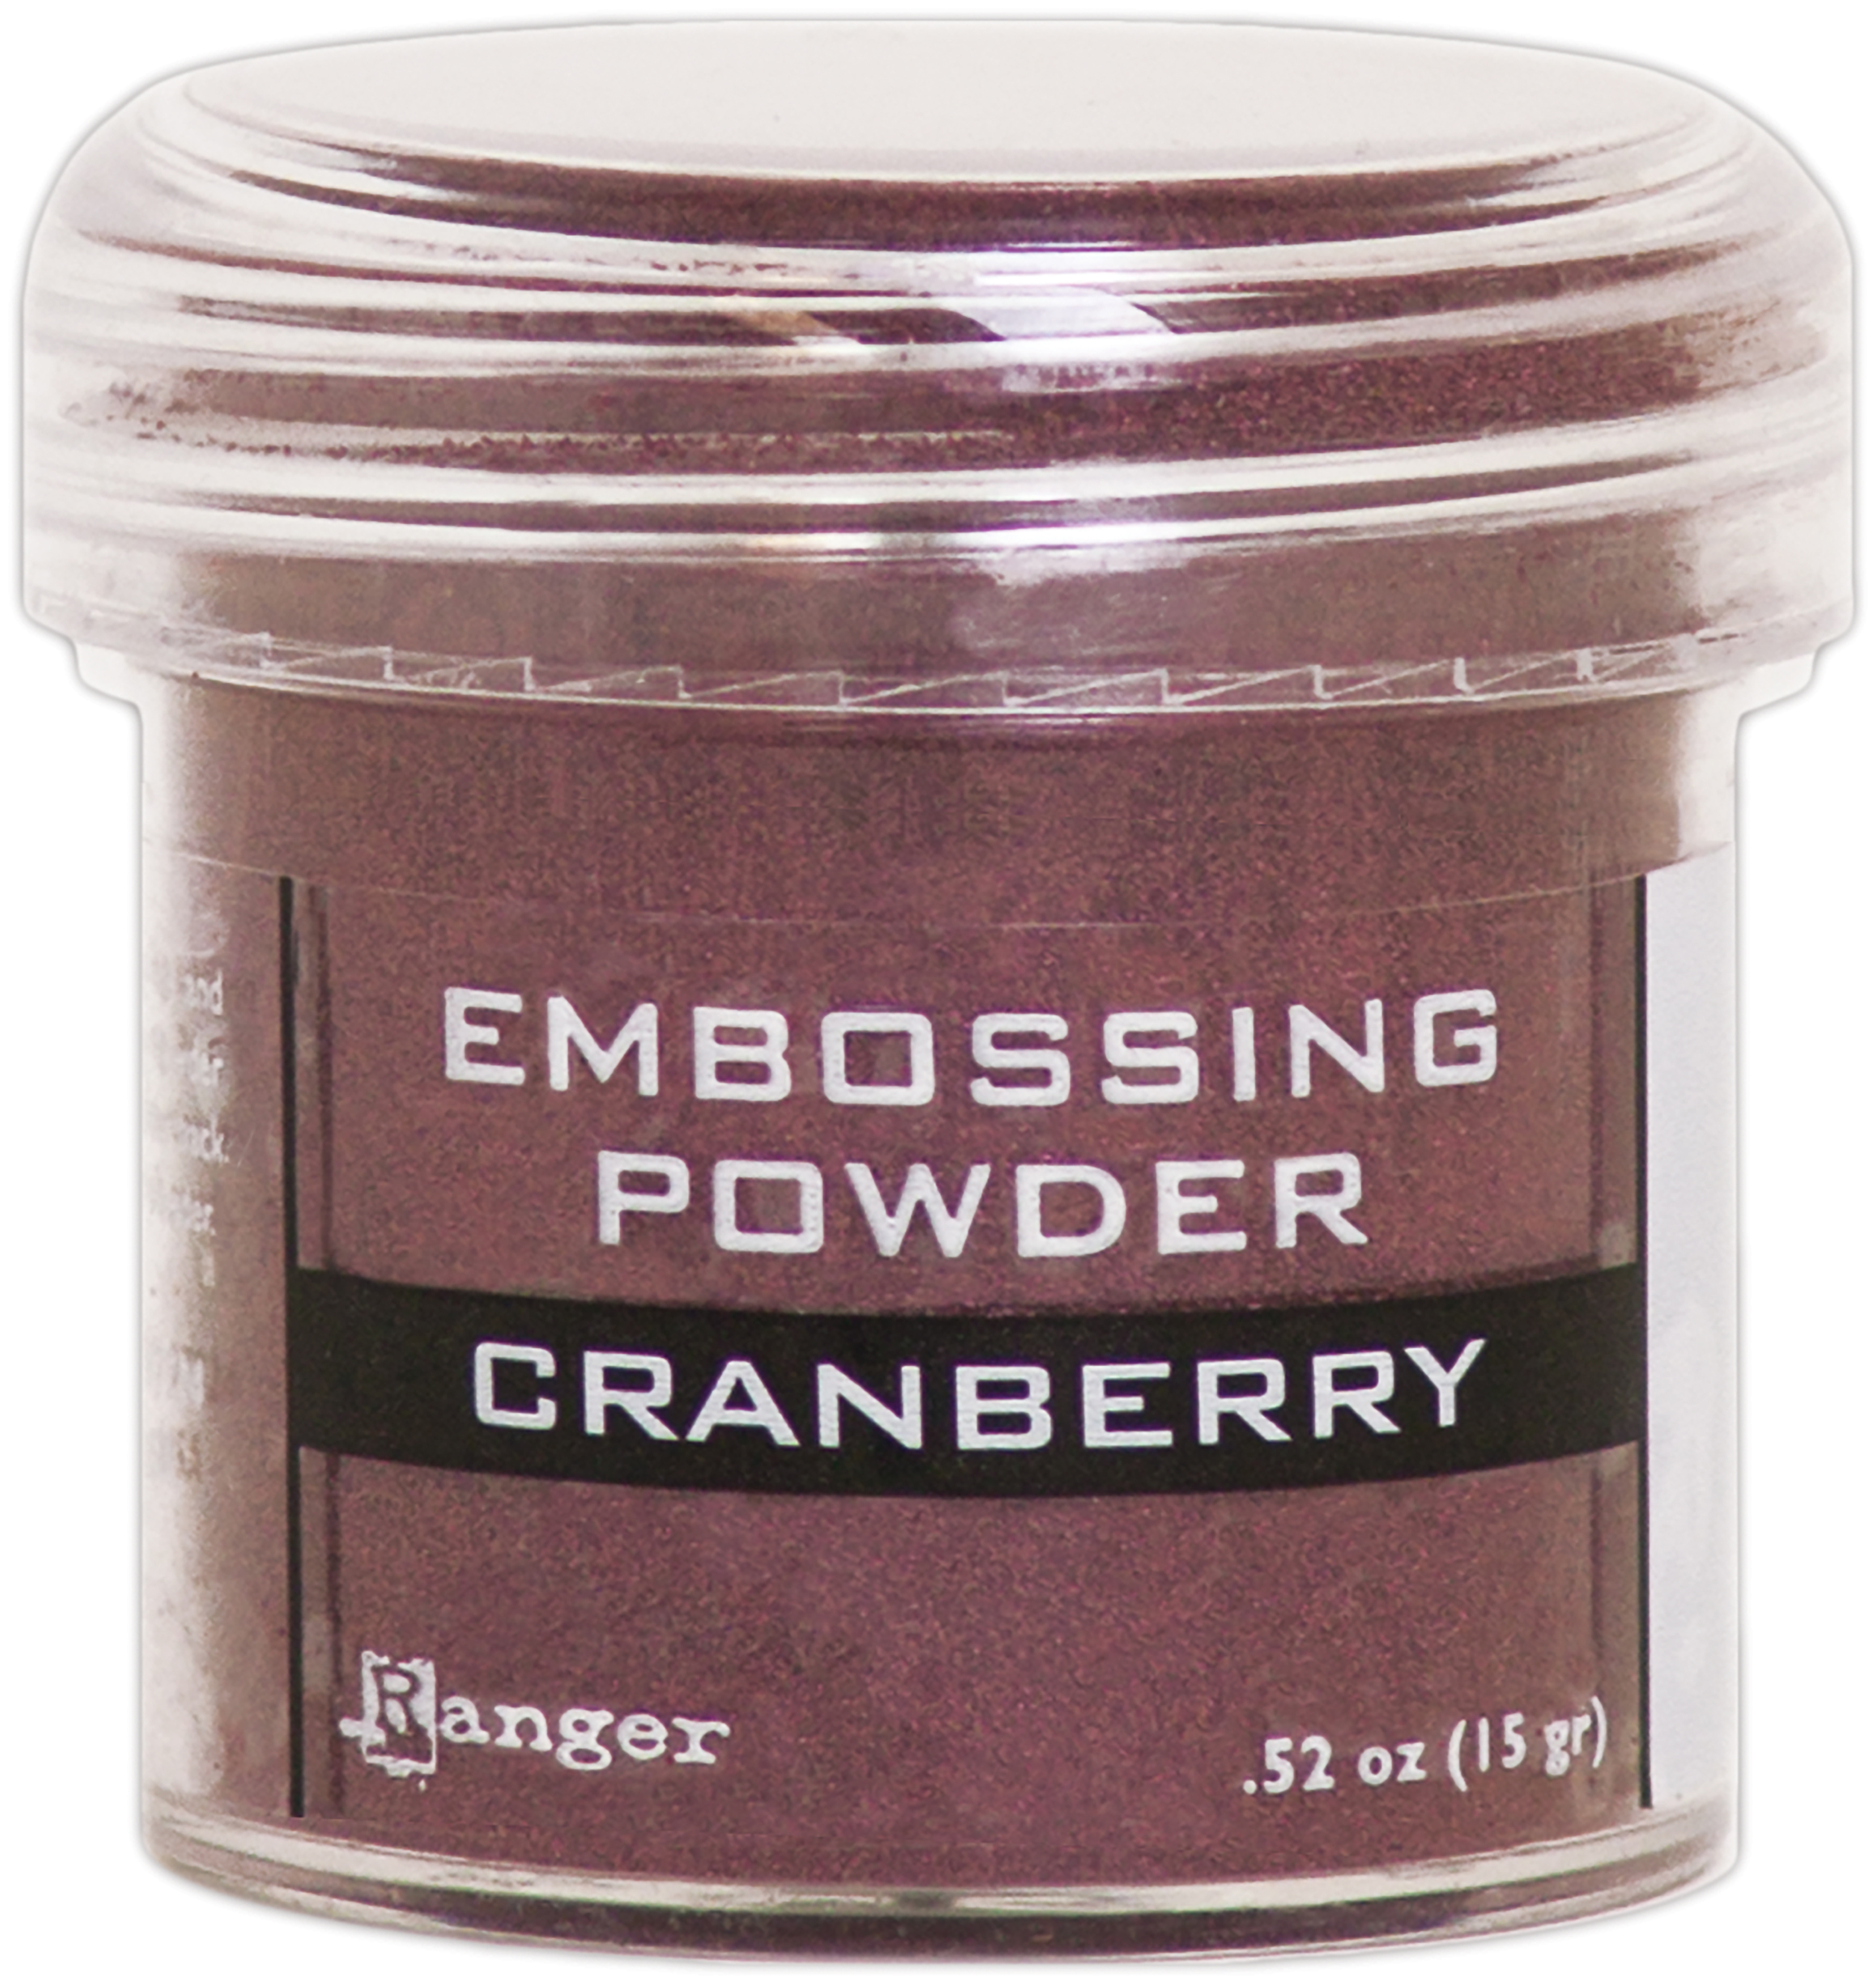 CRANBERRY -EMBOSSING POWDER